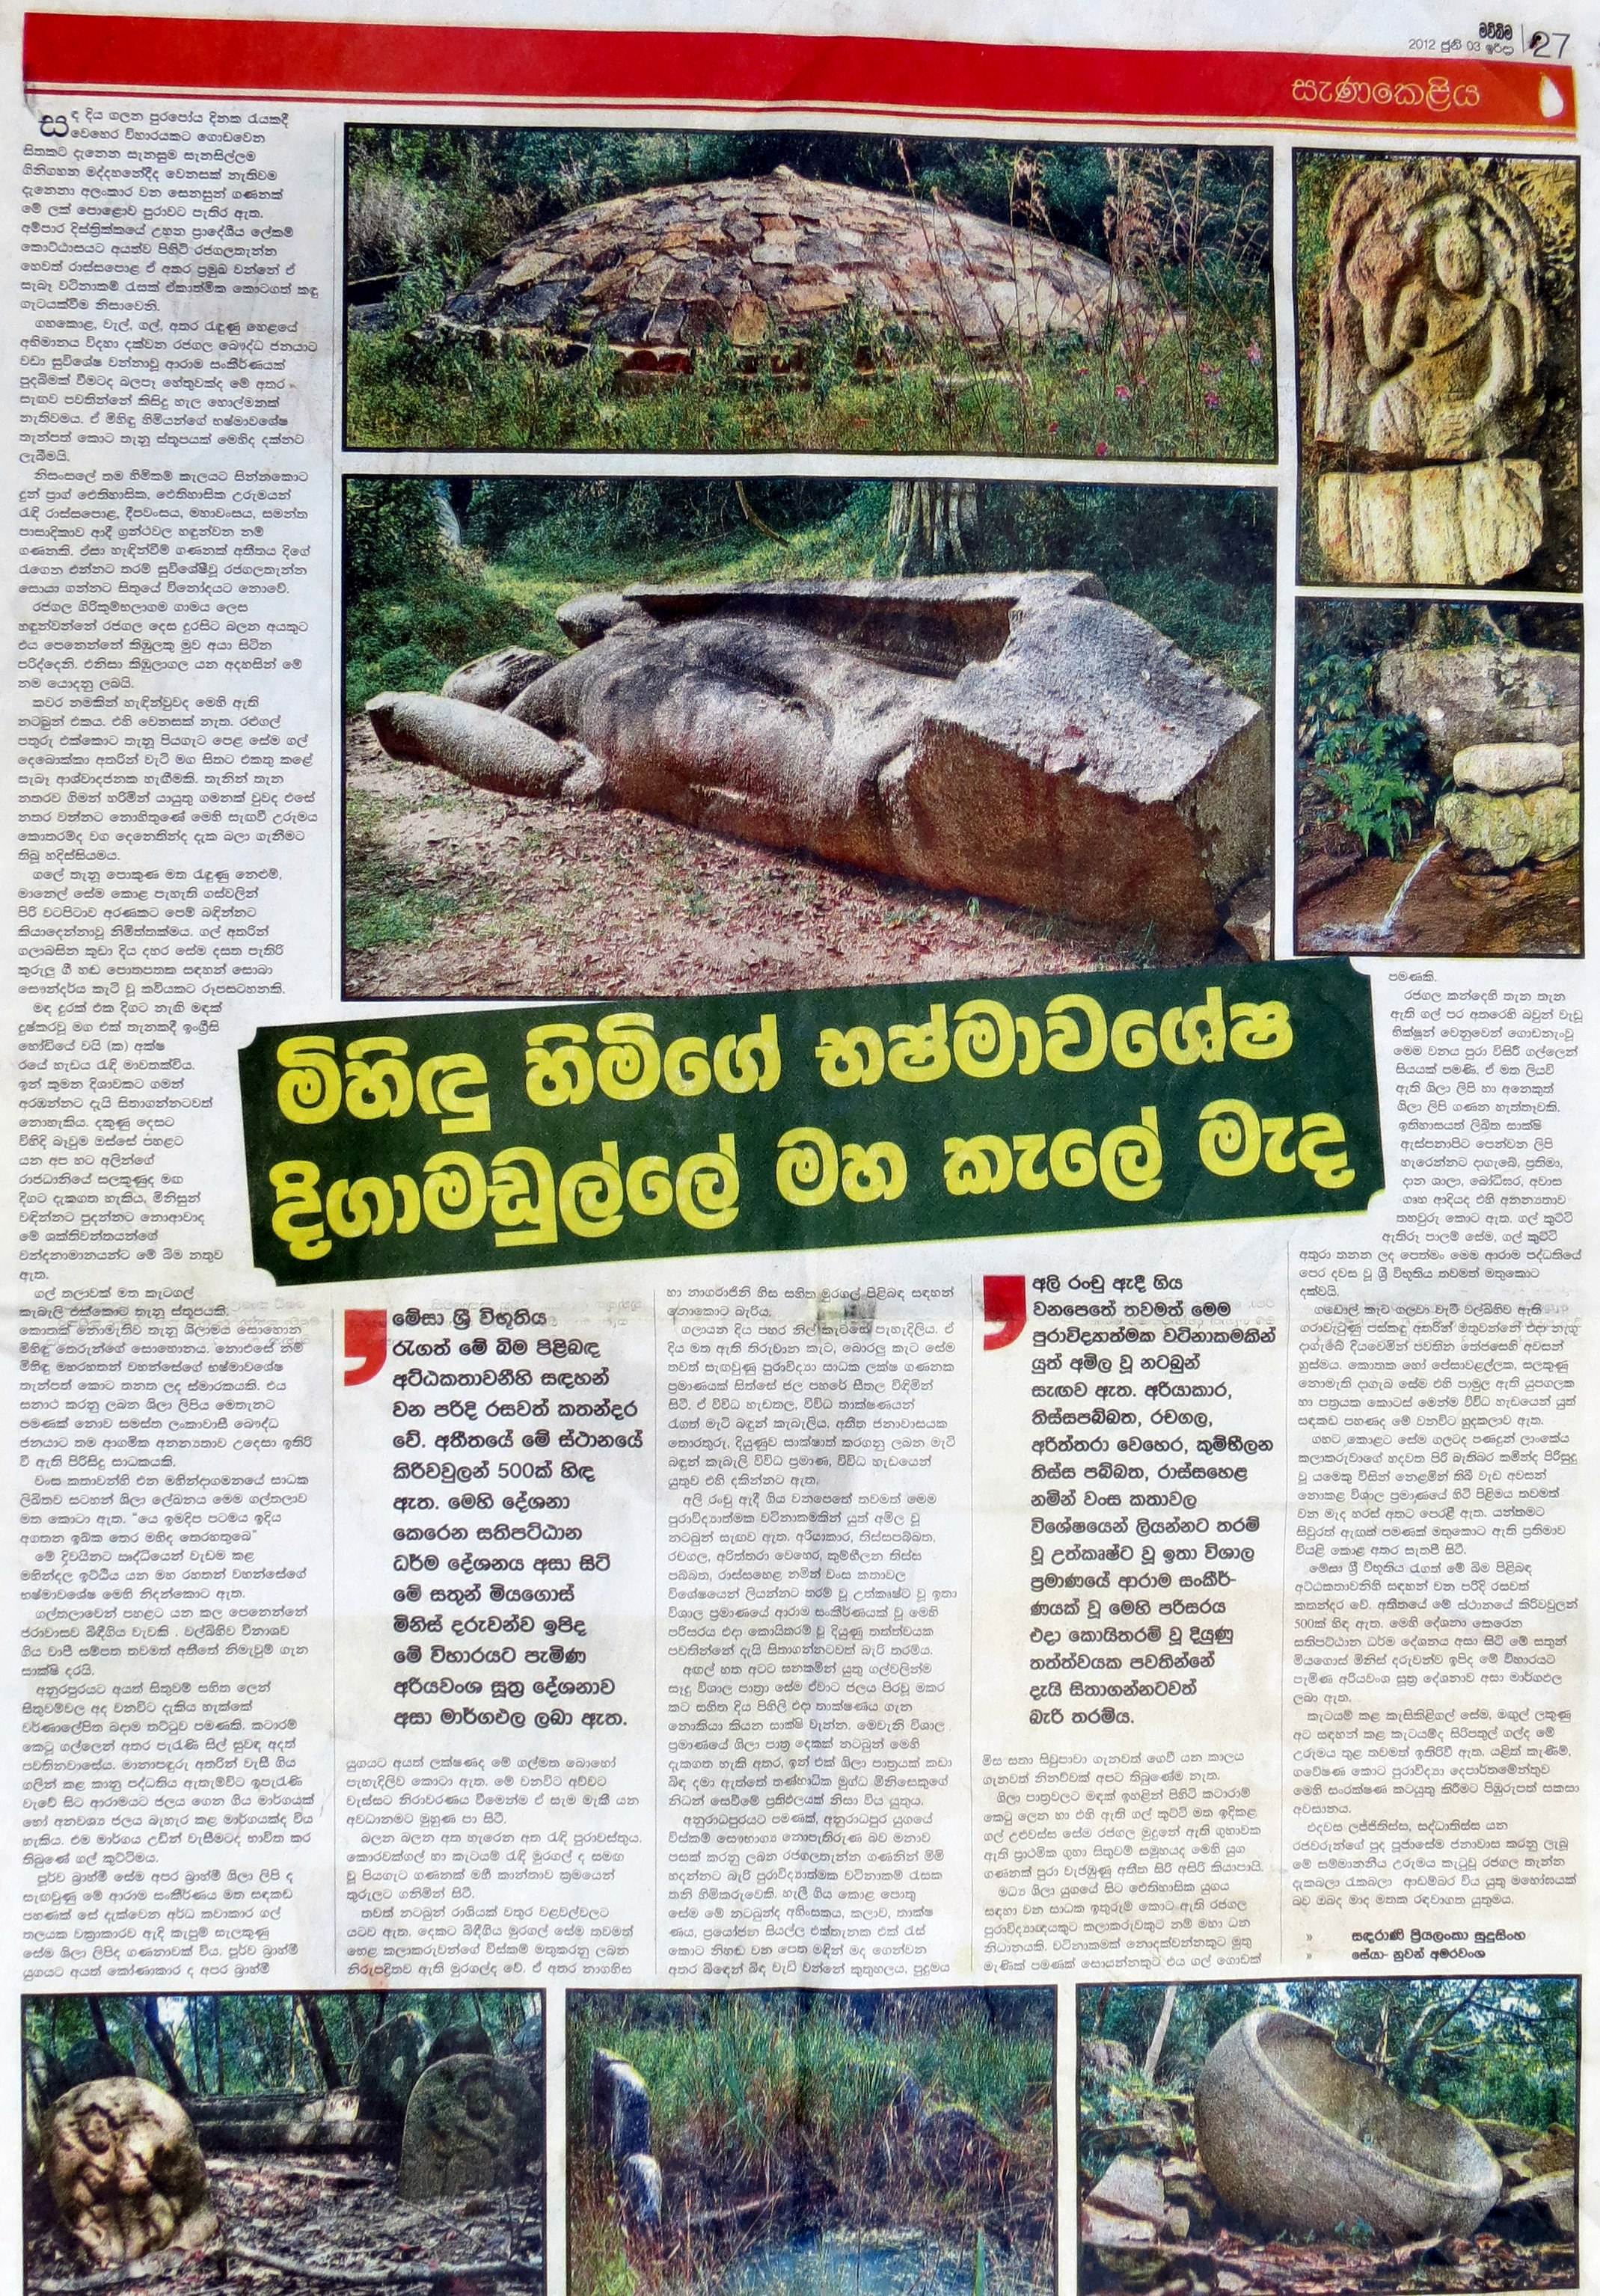 paper Article on Rajagala